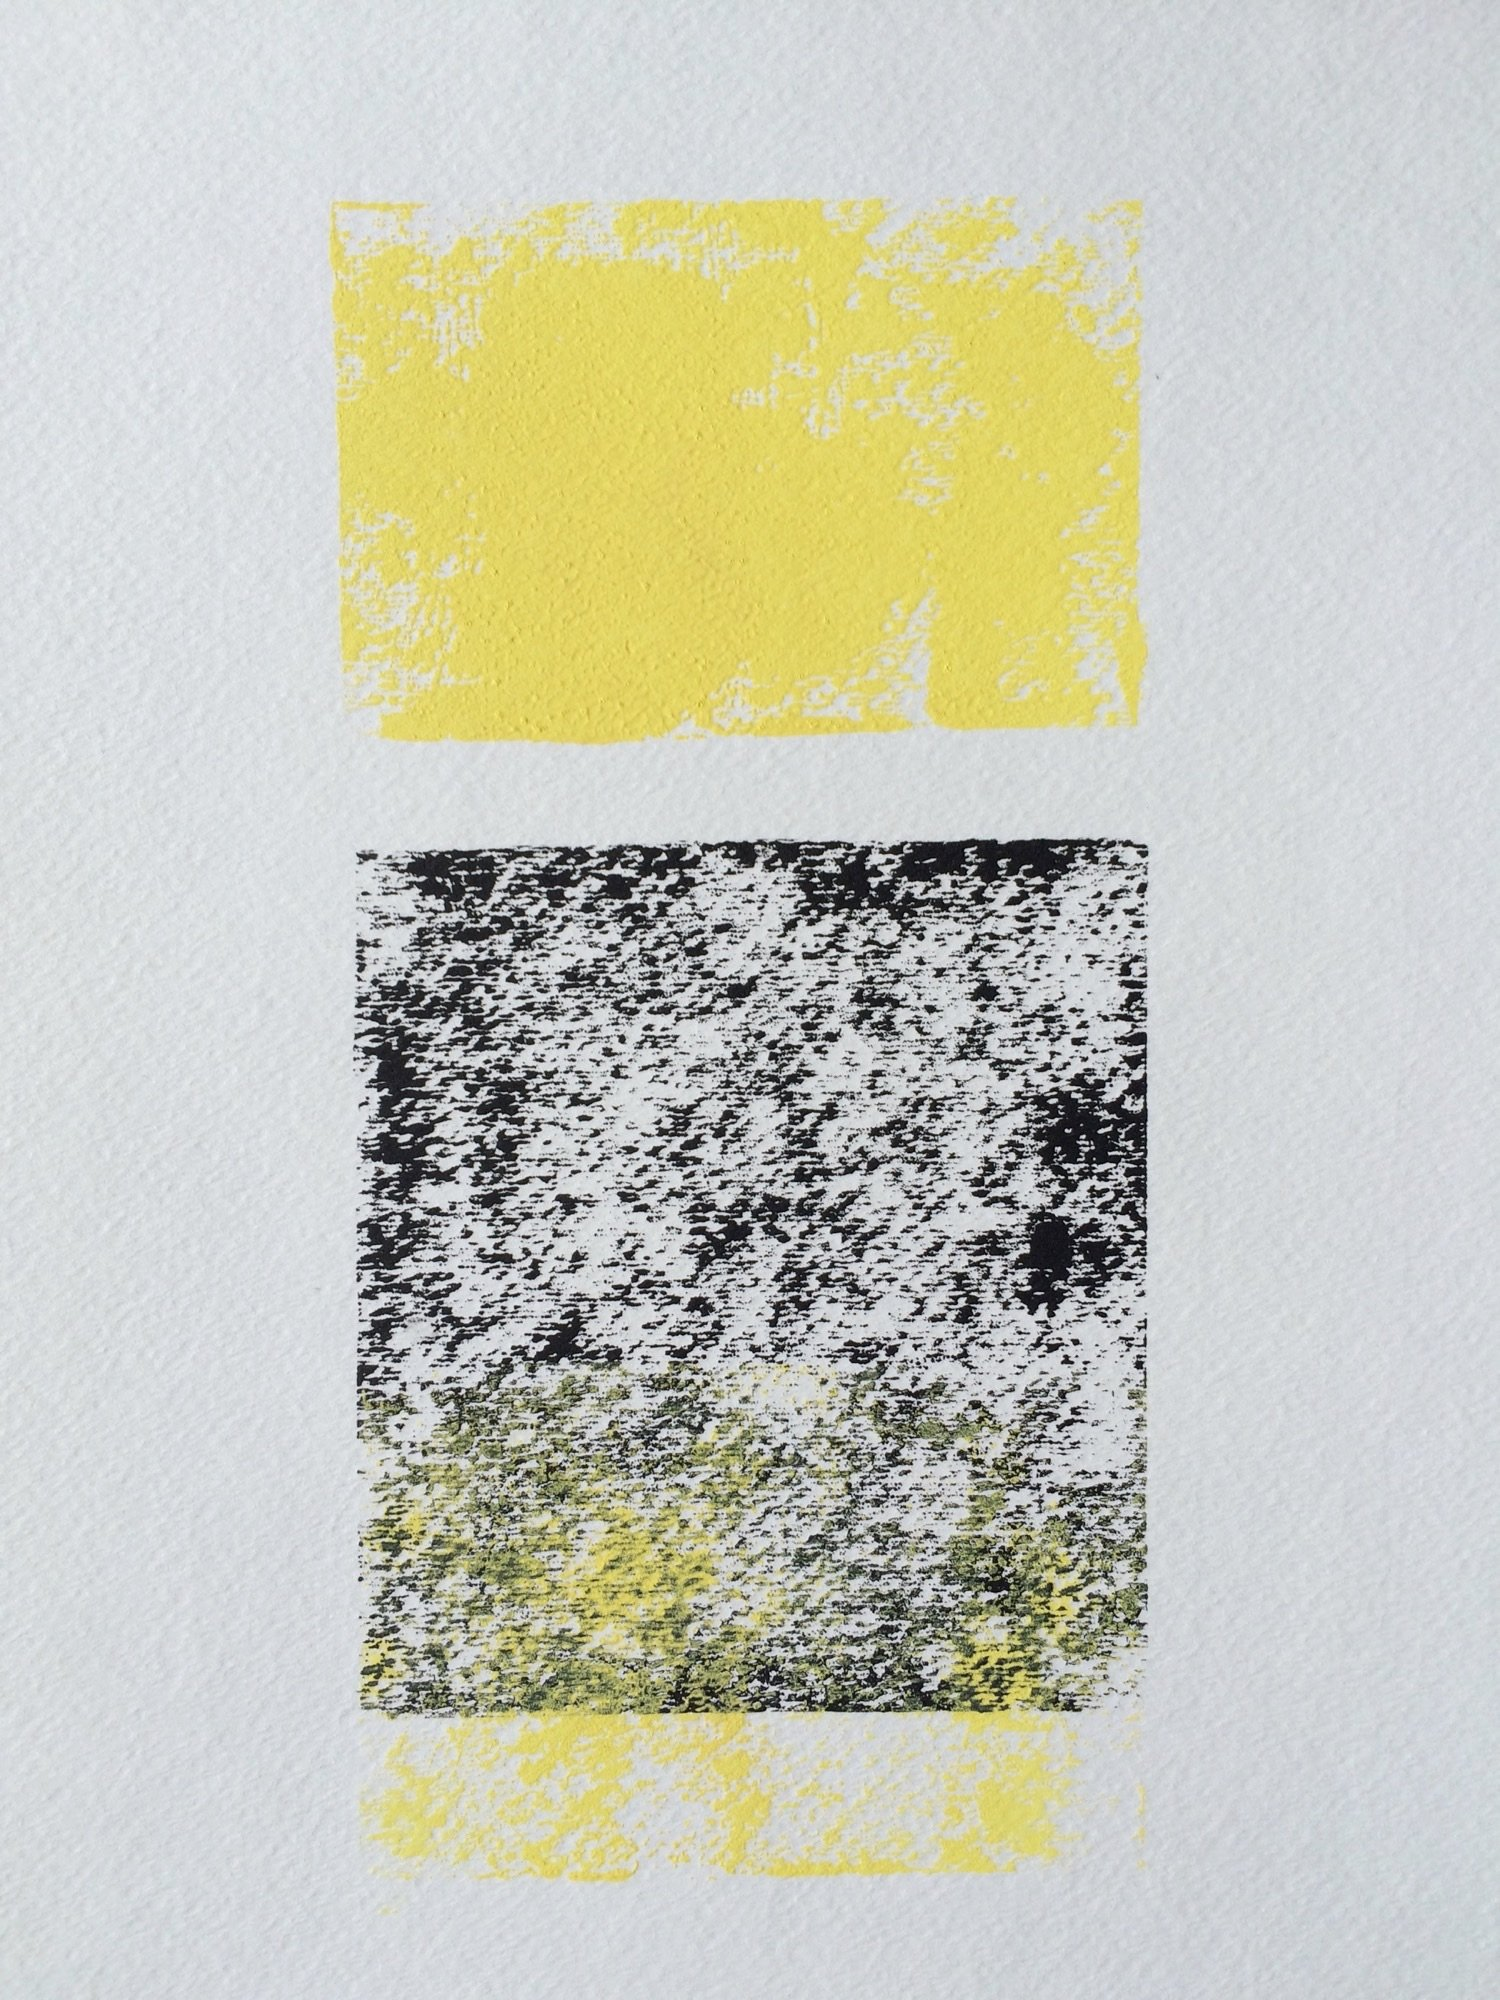 Yellow and Black abstract 9x12 block print by